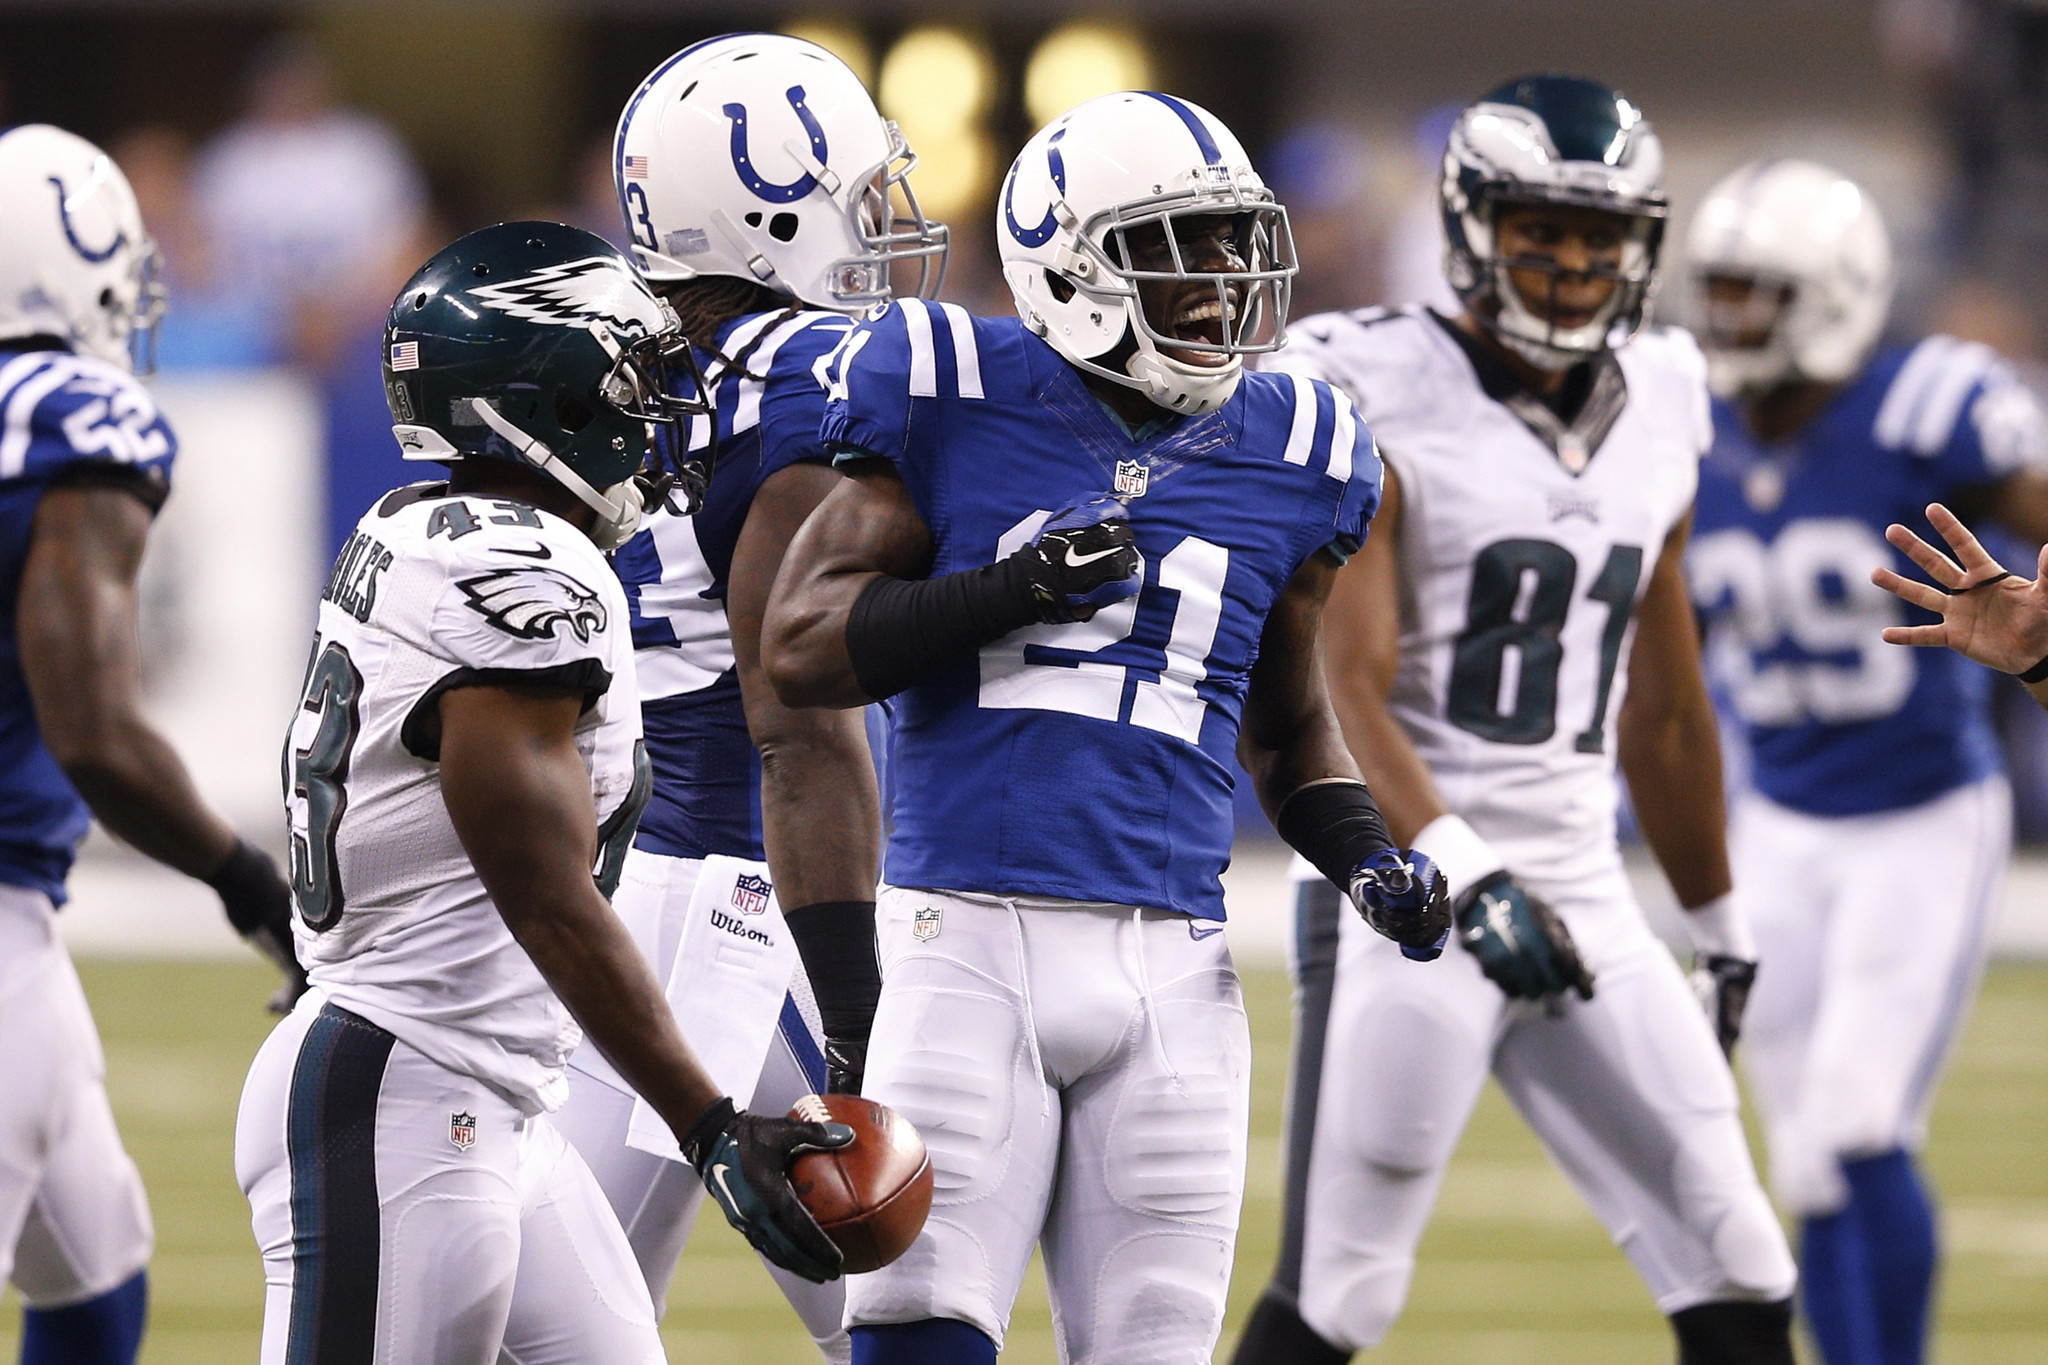 Colts corner Vontae Davis has been on a roll lately Baltimore Sun